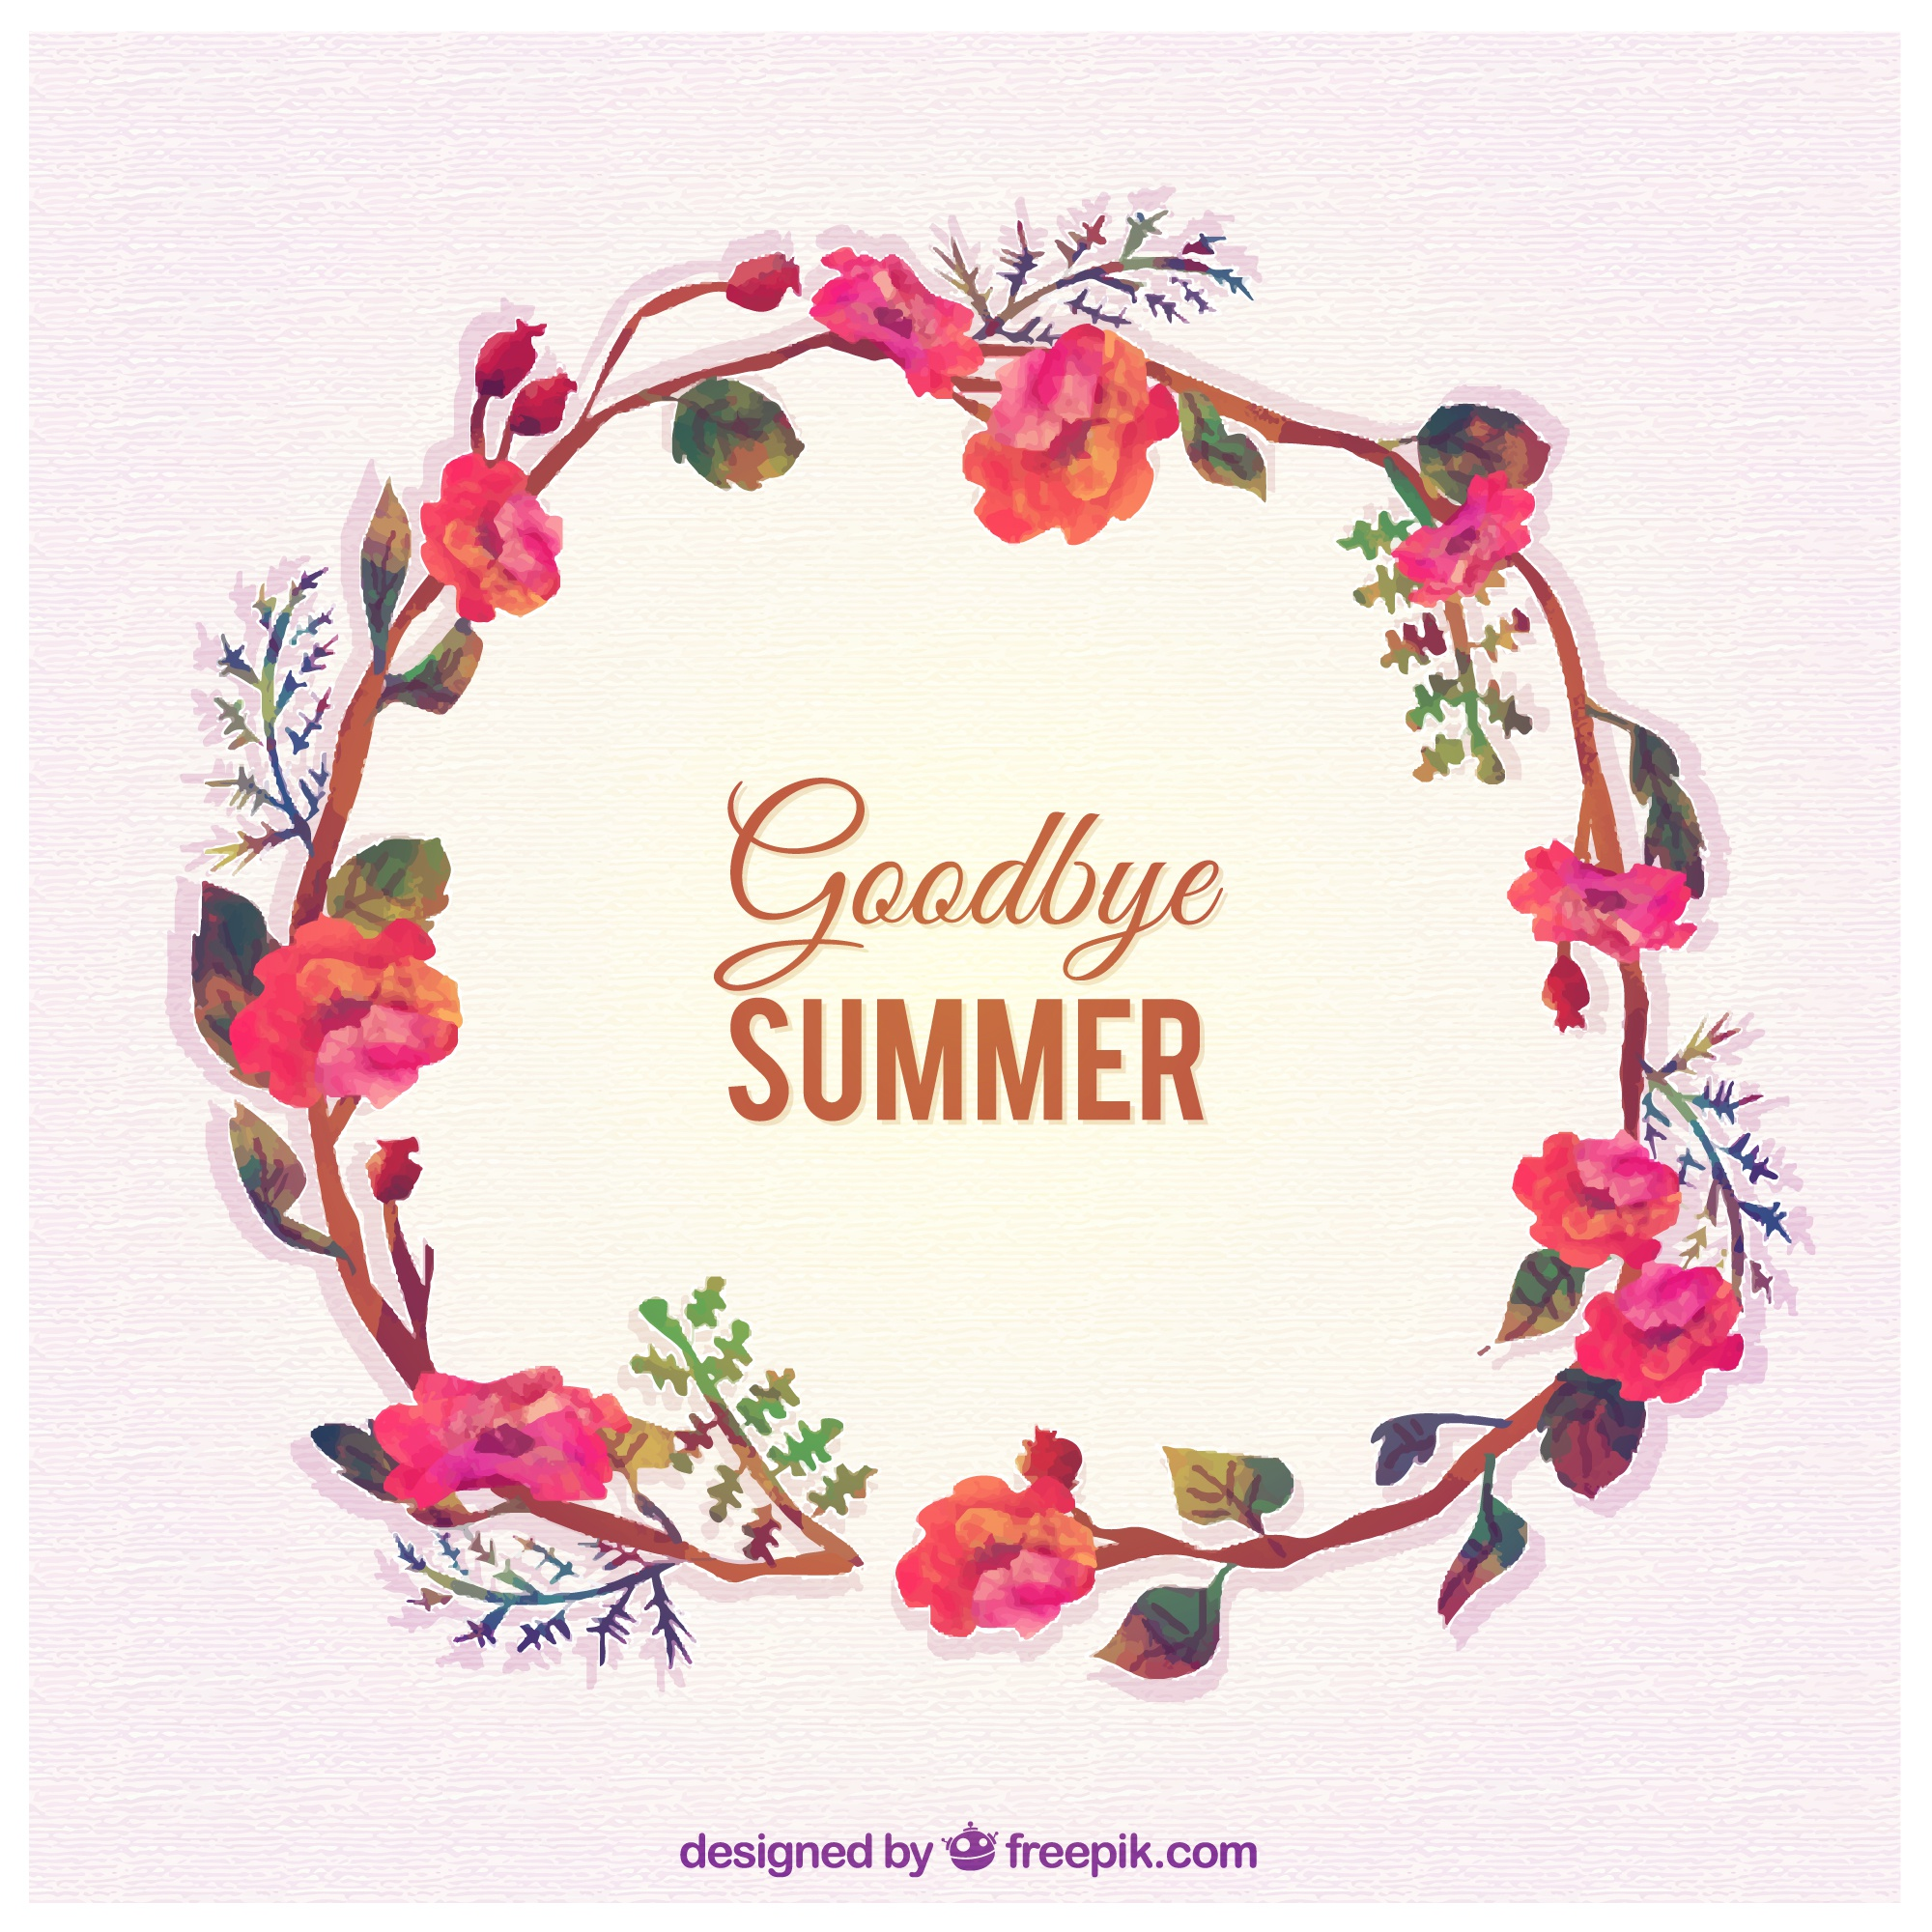 Goodbye summer with floral wreath